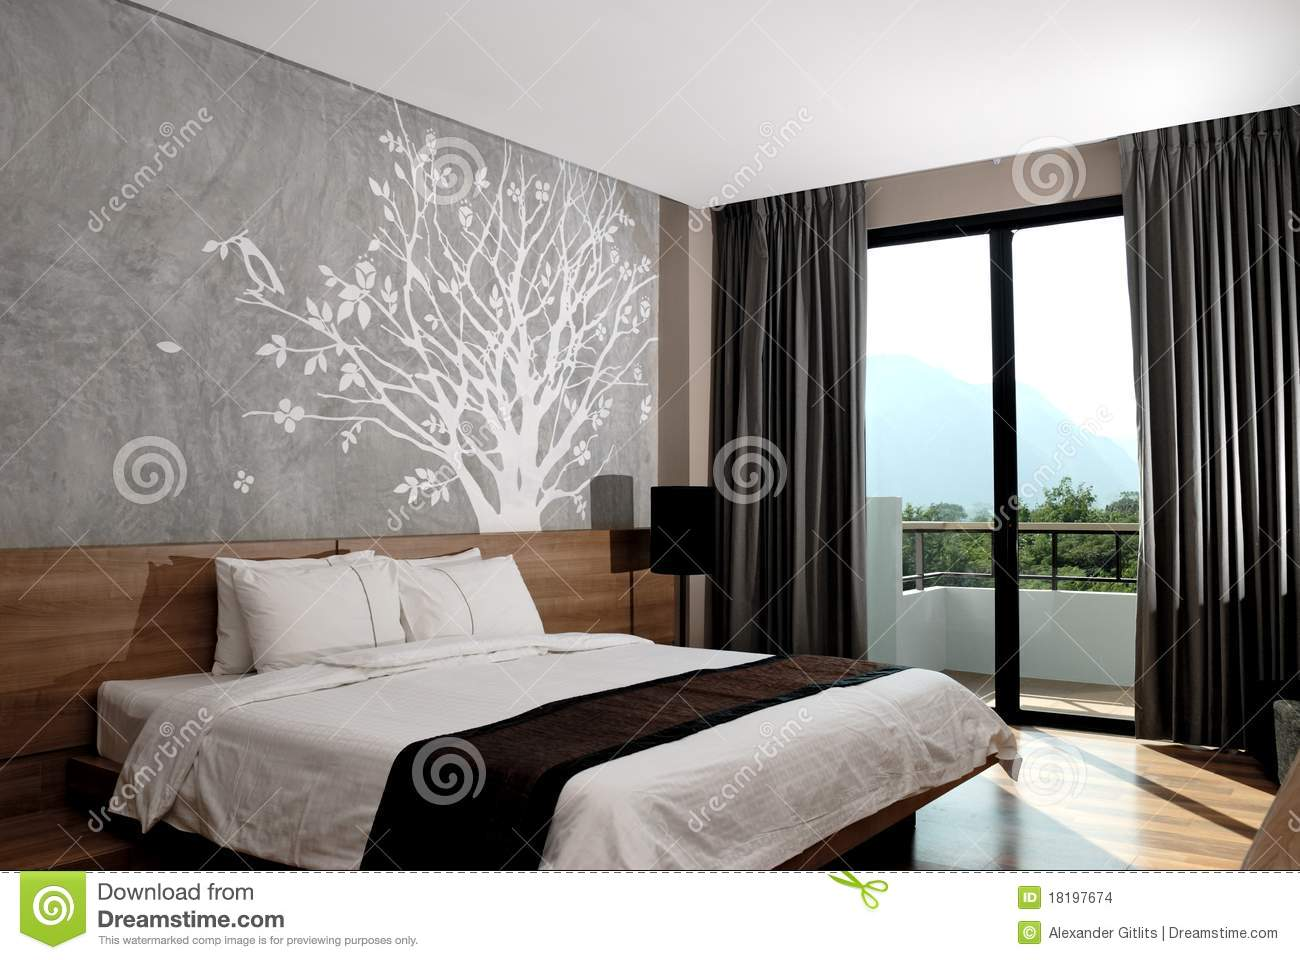 Modern Hotel Room Interior stock photo Image of headboard